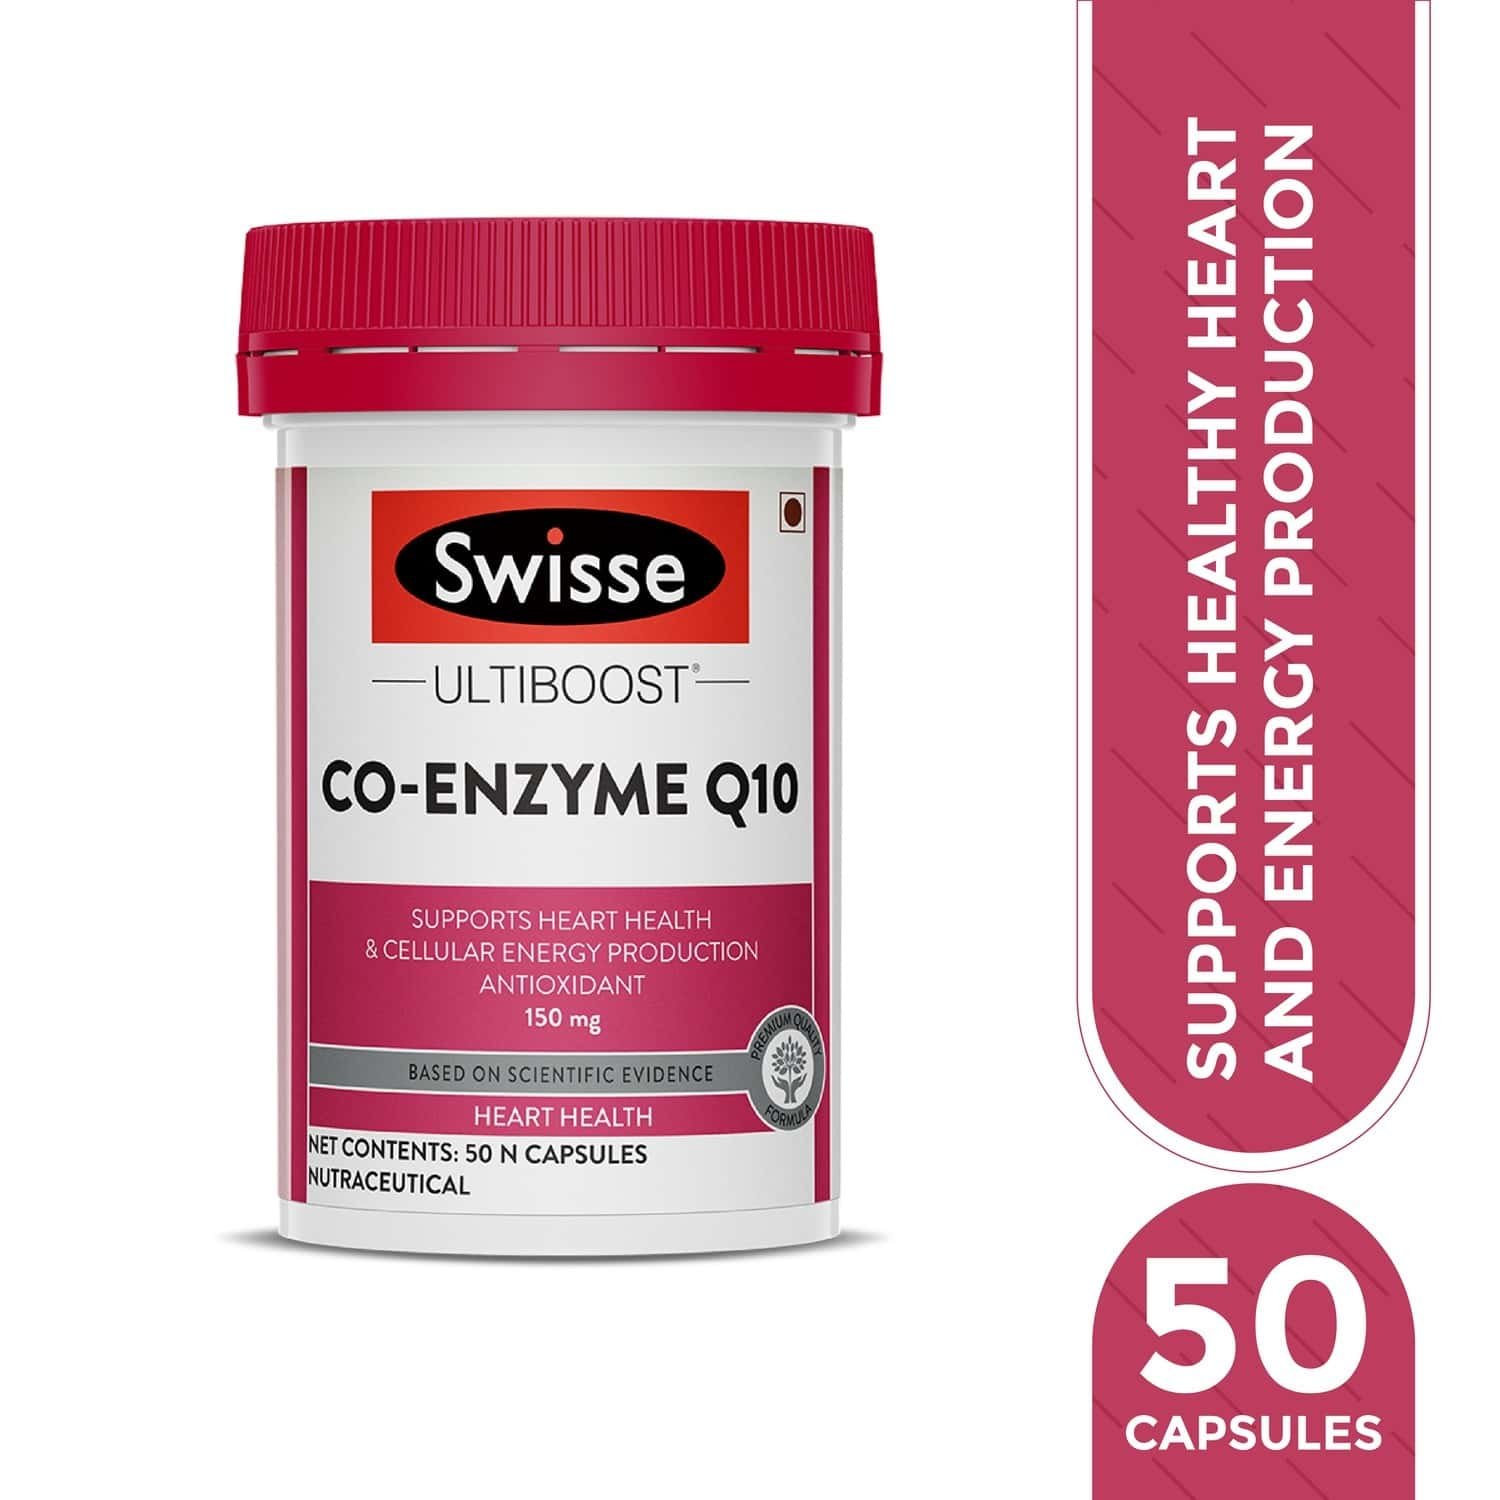 Swisse Ub Co Enzymeq10 150mg Cardiovascular Health Capsules Bottle Of 50